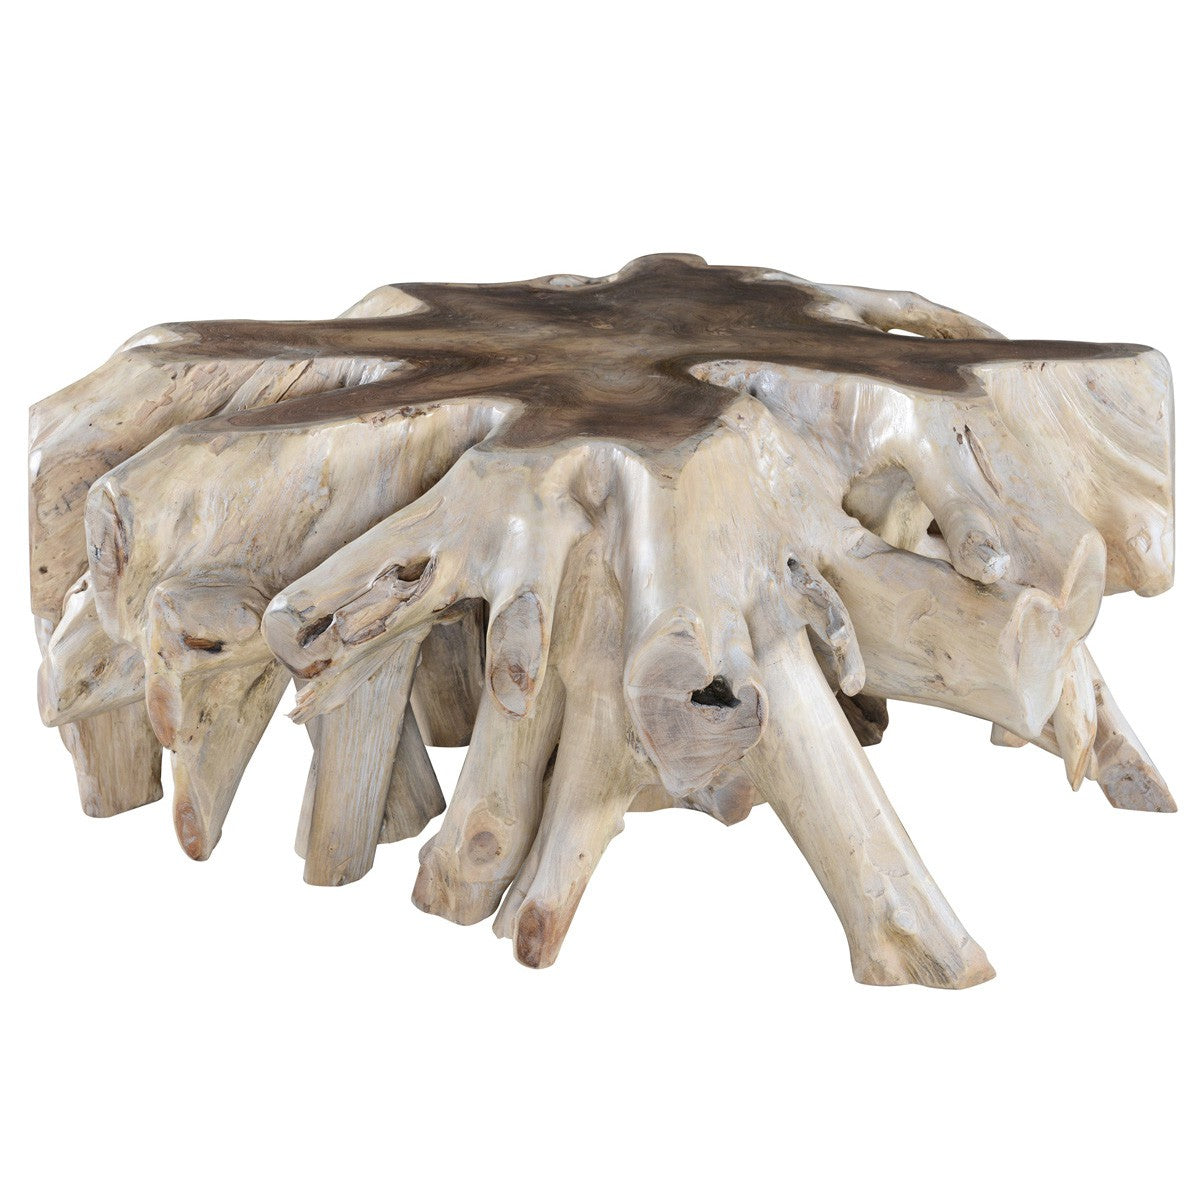 Cypress Root Coffee Table